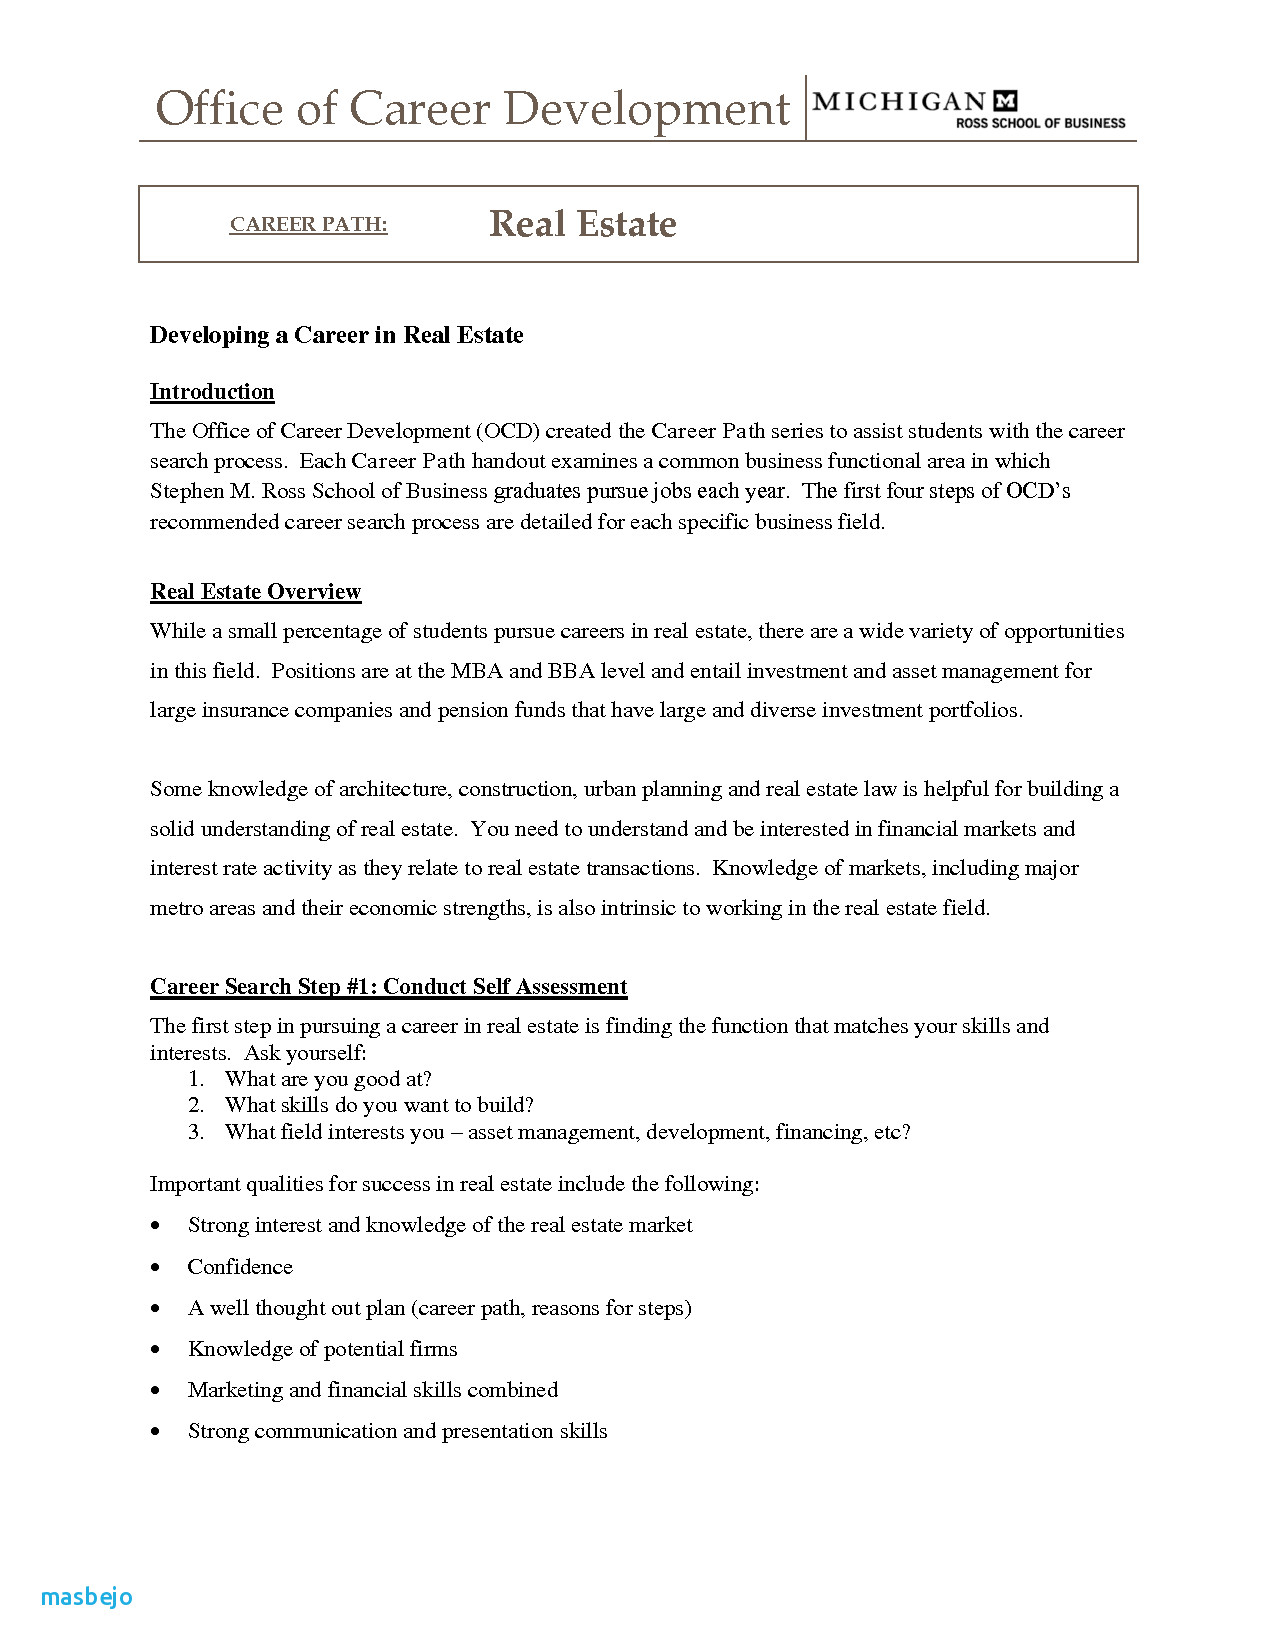 Sample Resume Real Estate Bio Examples - Sample Resume Real Estate Bio Examples Real Estate Agent Resume